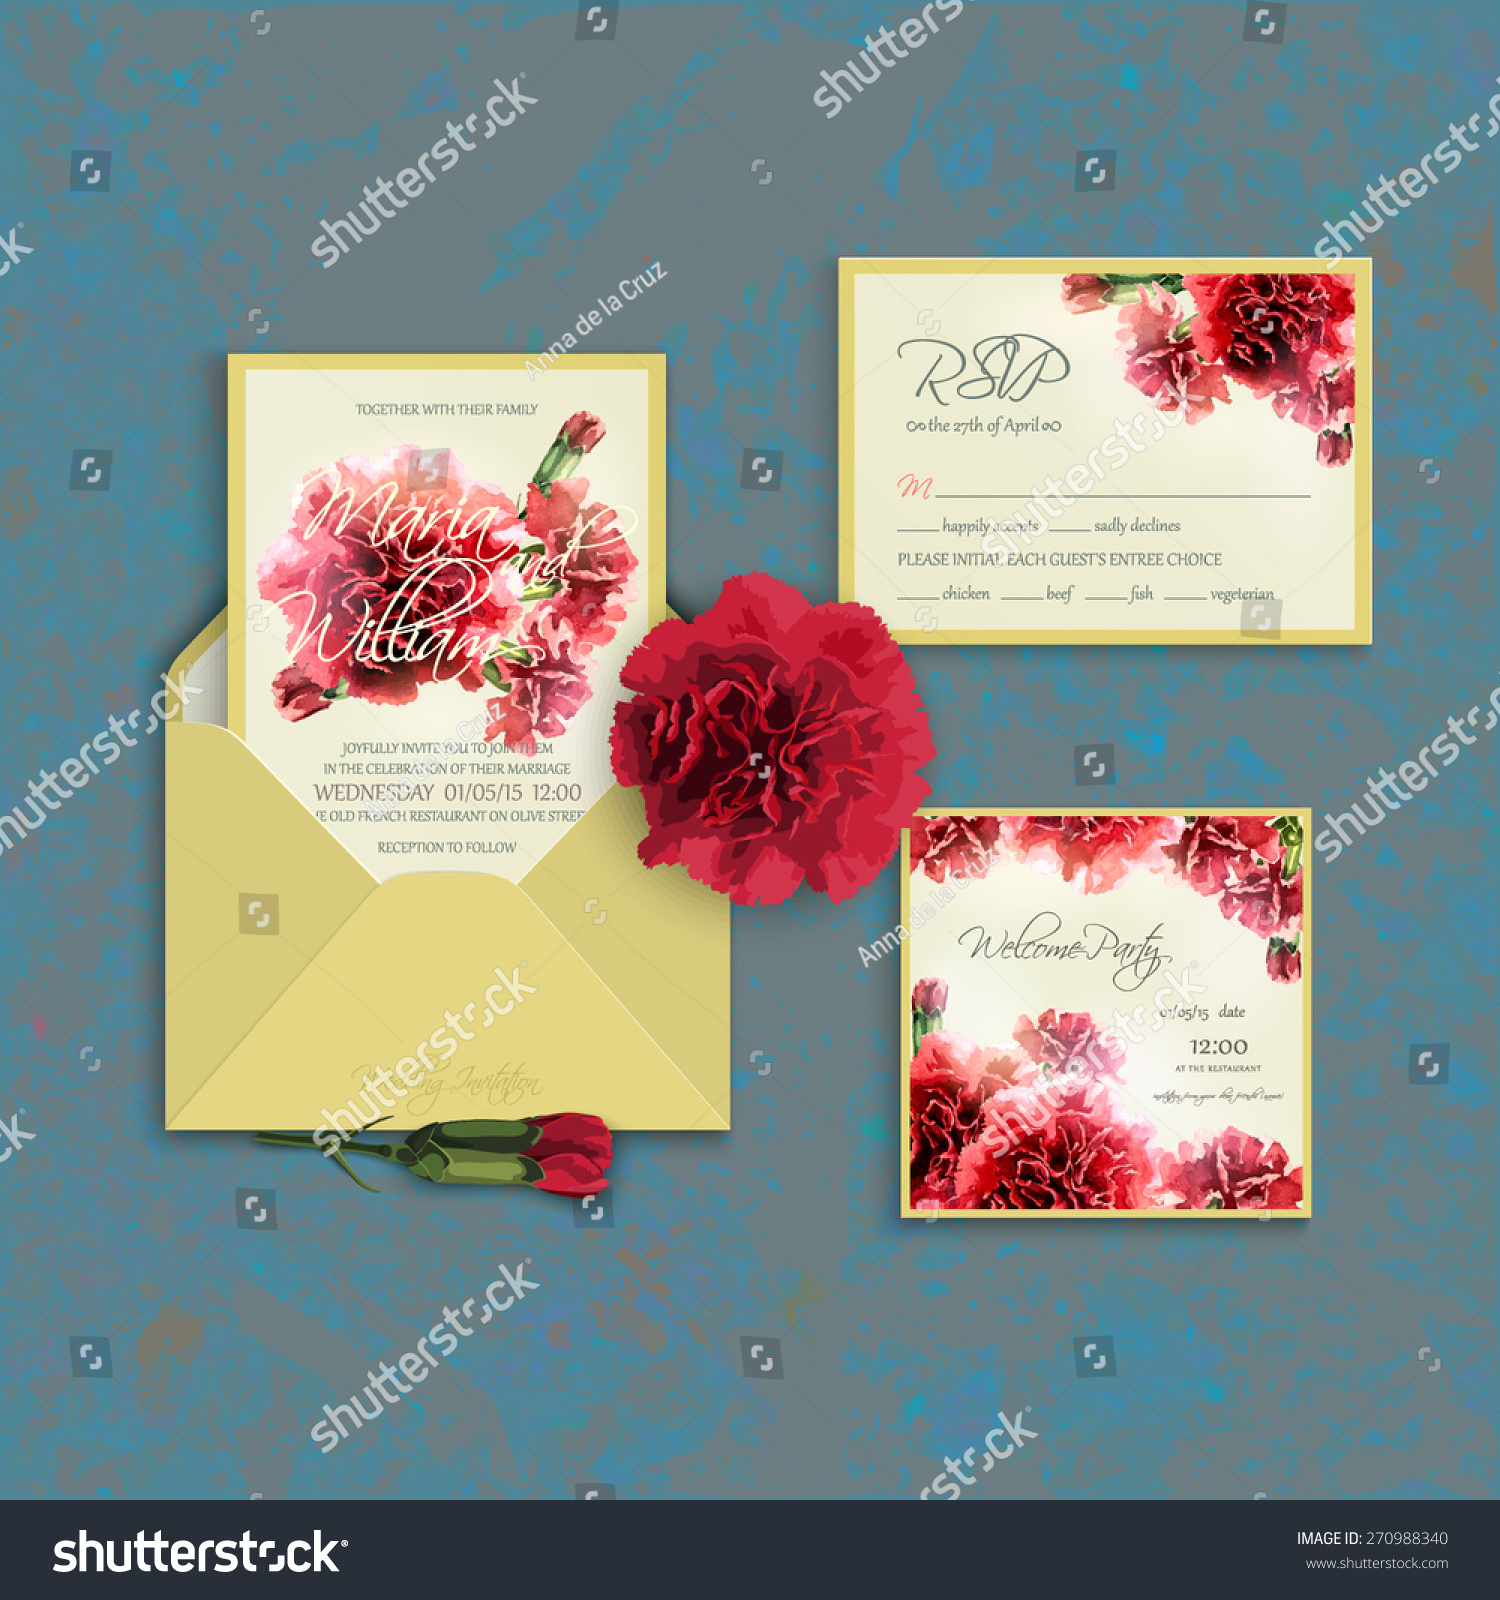 Invitation Set Template Watercolor Red Carnation Stock Vector ...